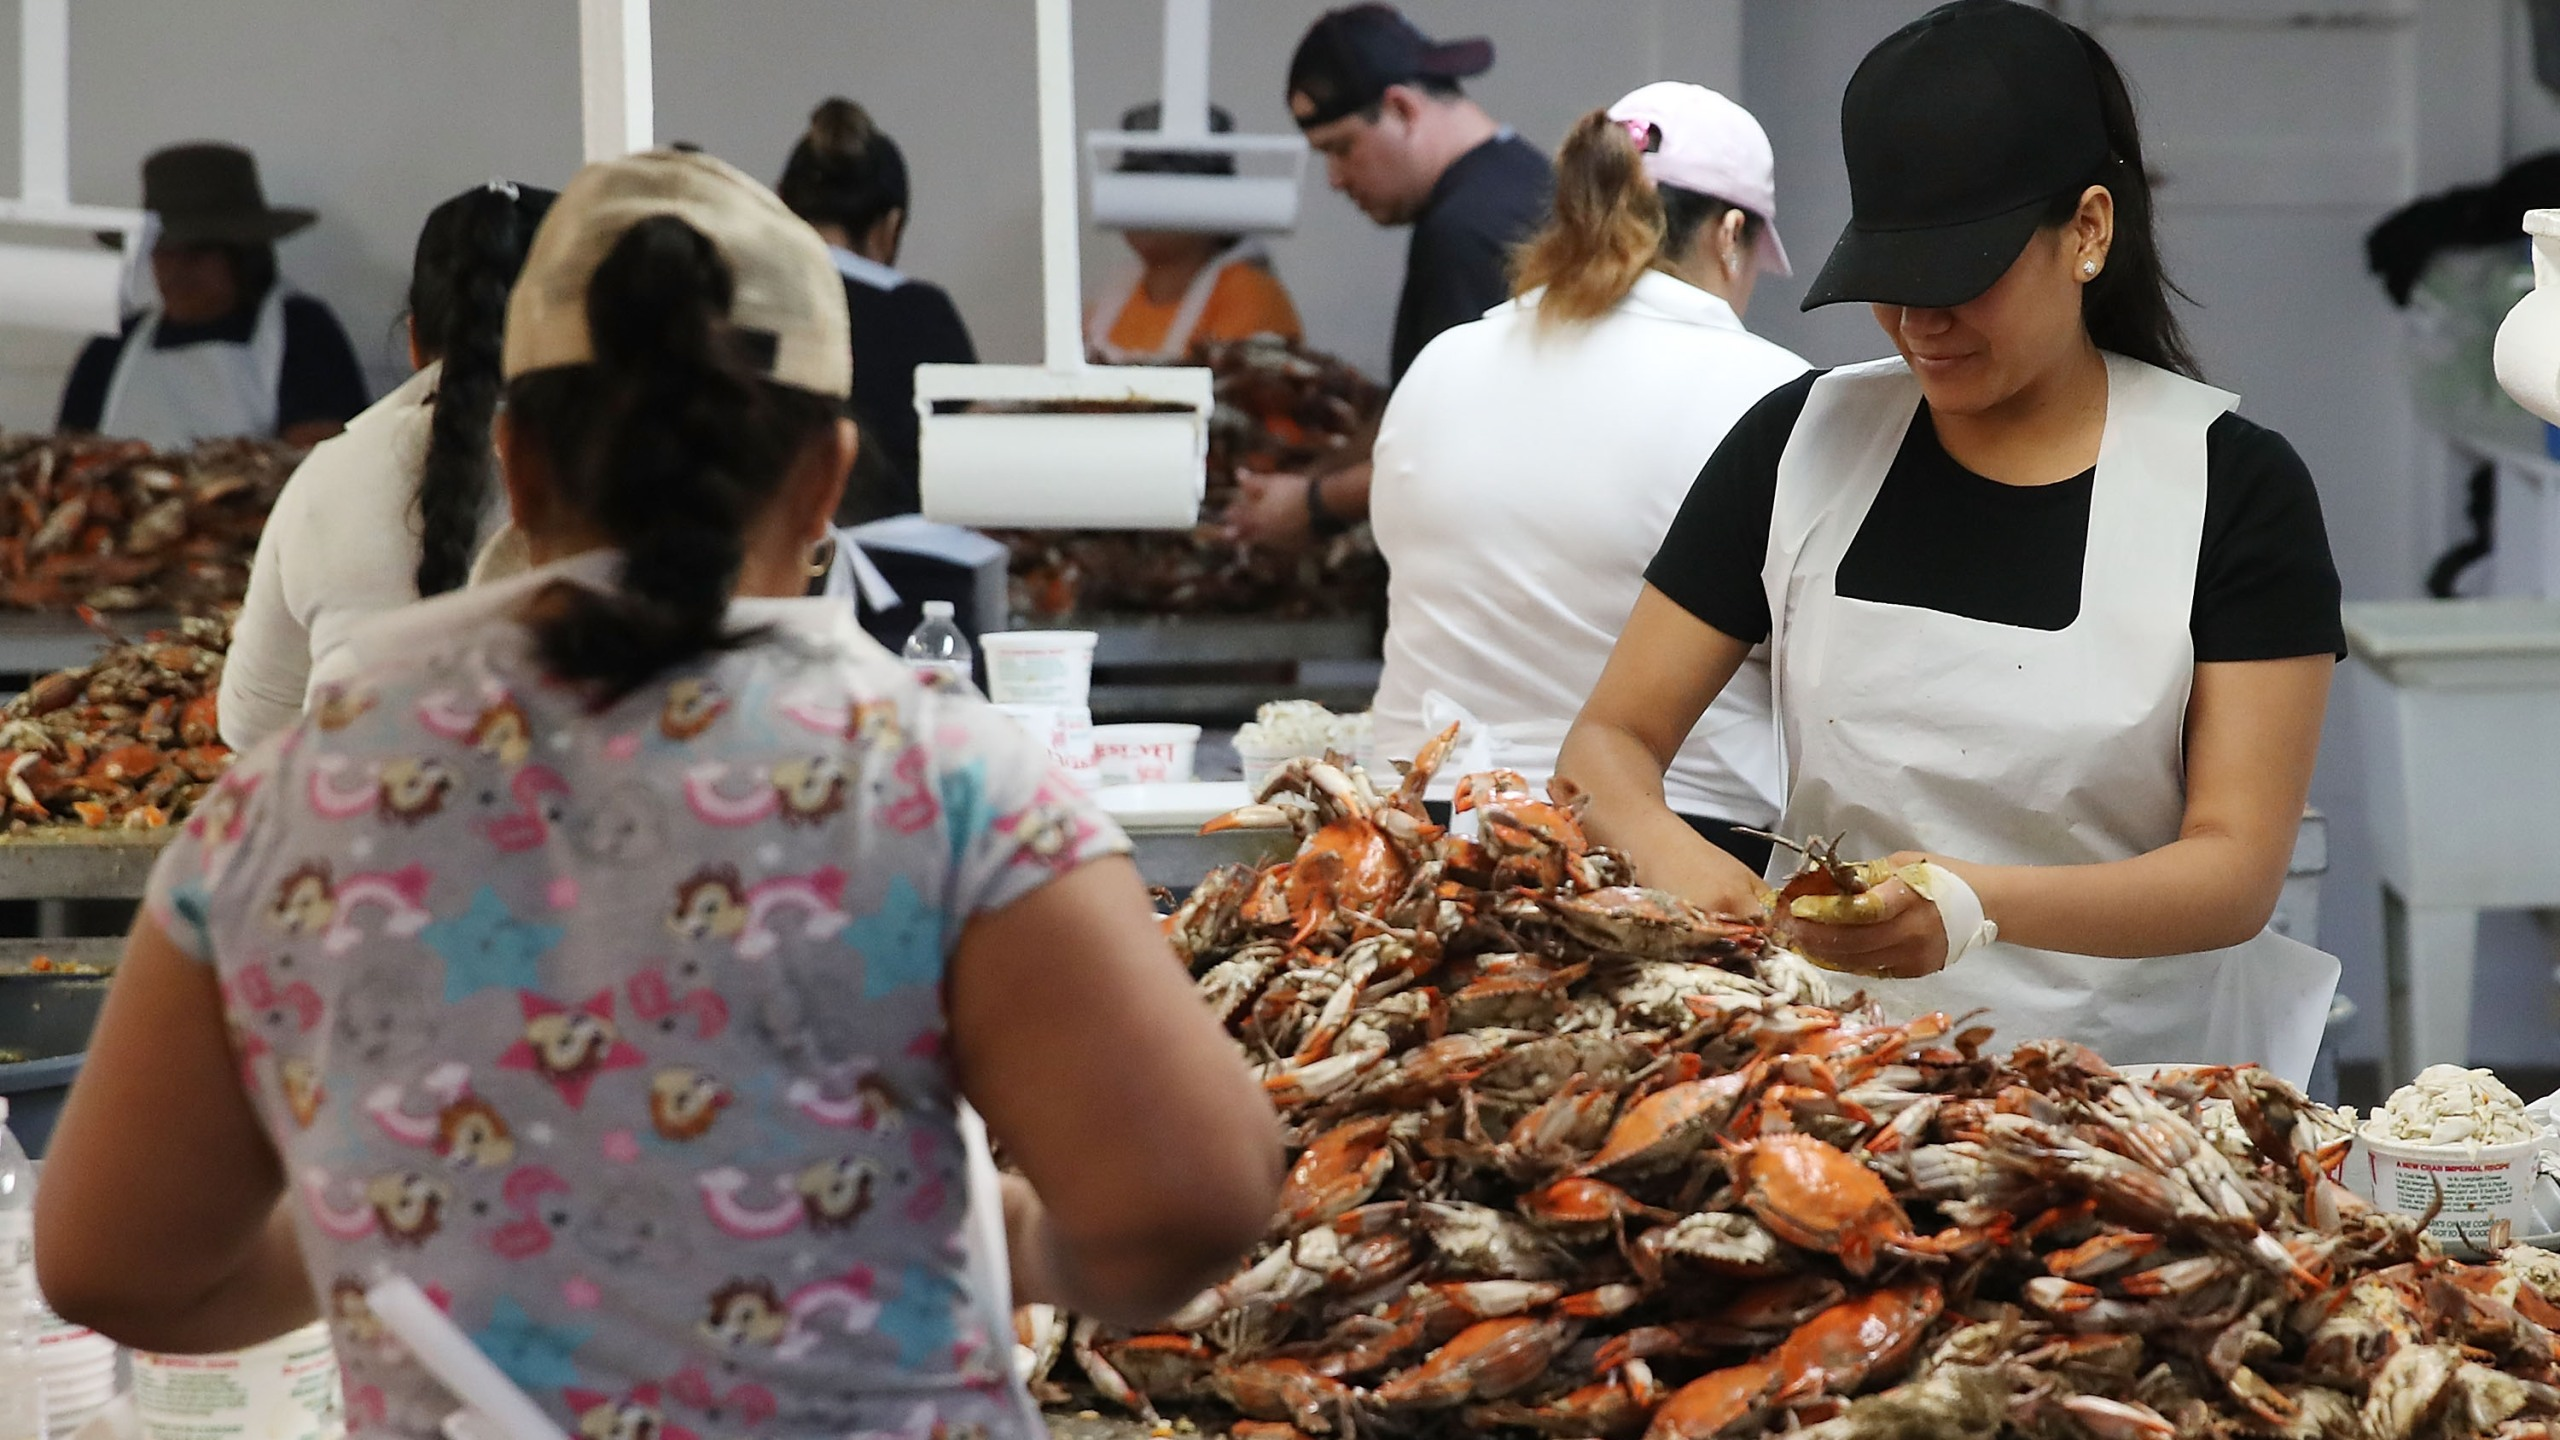 Women pick crabs at the W.T. Ruark Seafood Co., on May 17, 2018 in Hoopers Island, Maryland. Due to a new lottery system in 2018, several seafood companies failed to get temporary H-2B visas for their mostly Mexican workforce that has been coming to the Maryland eastern shore for over two decades to pick the crab meat that is sold in restaurants and stores on the east coast. (Mark Wilson/Getty Images)